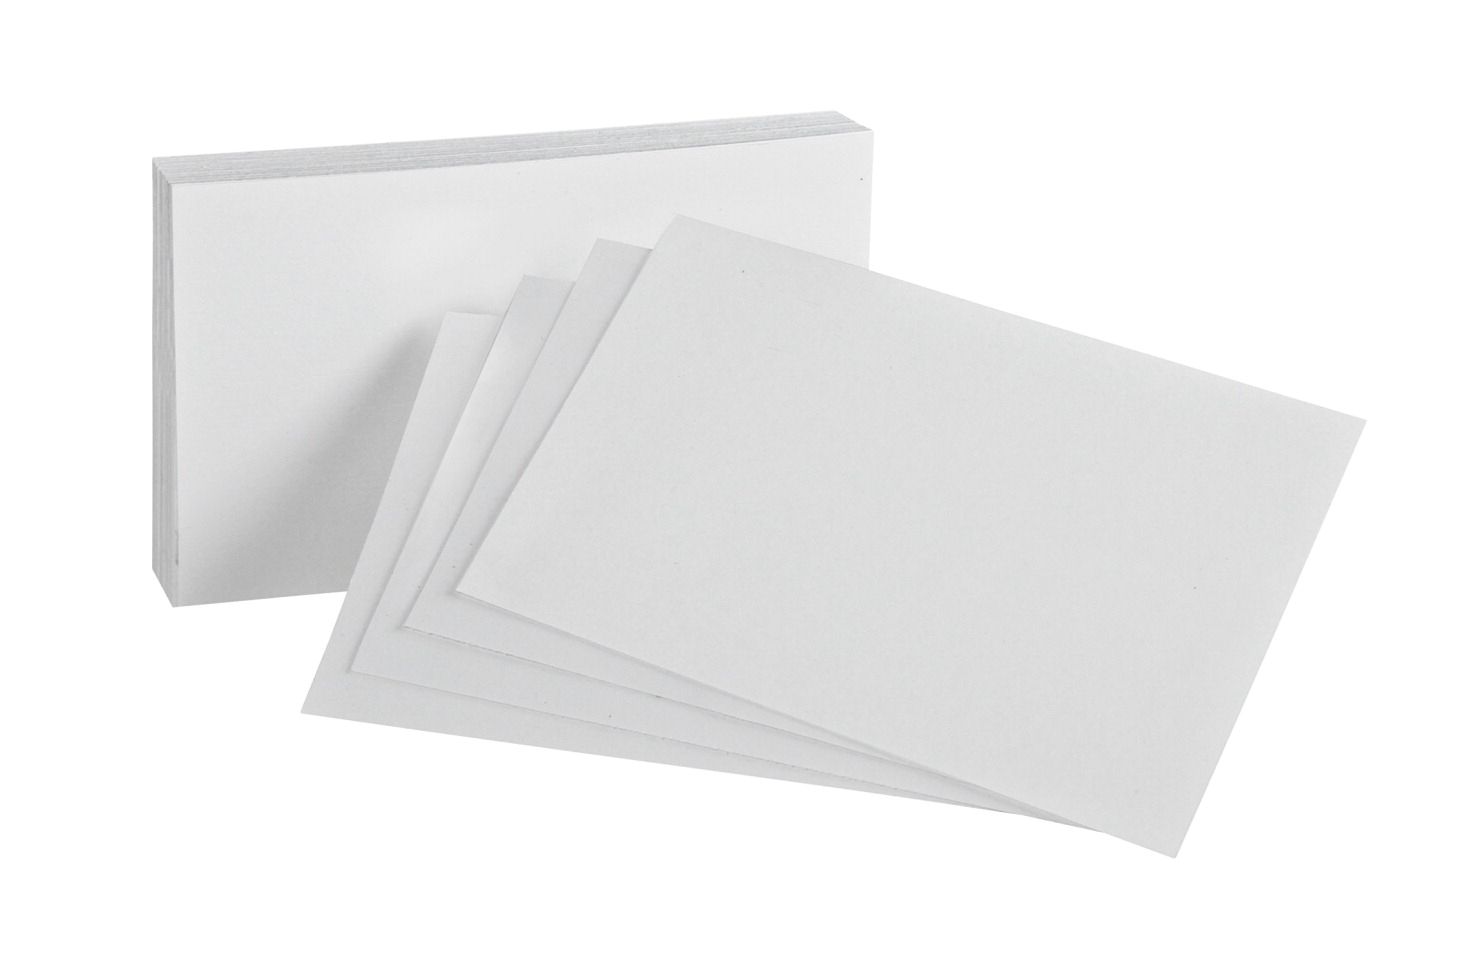 Esselte Pendaflex Oxford Blank Index Card; 4 X 6 In; White; Pack Of 100 - 1443129 - Facilities Management Dog Products Feeding Supplies 1443129